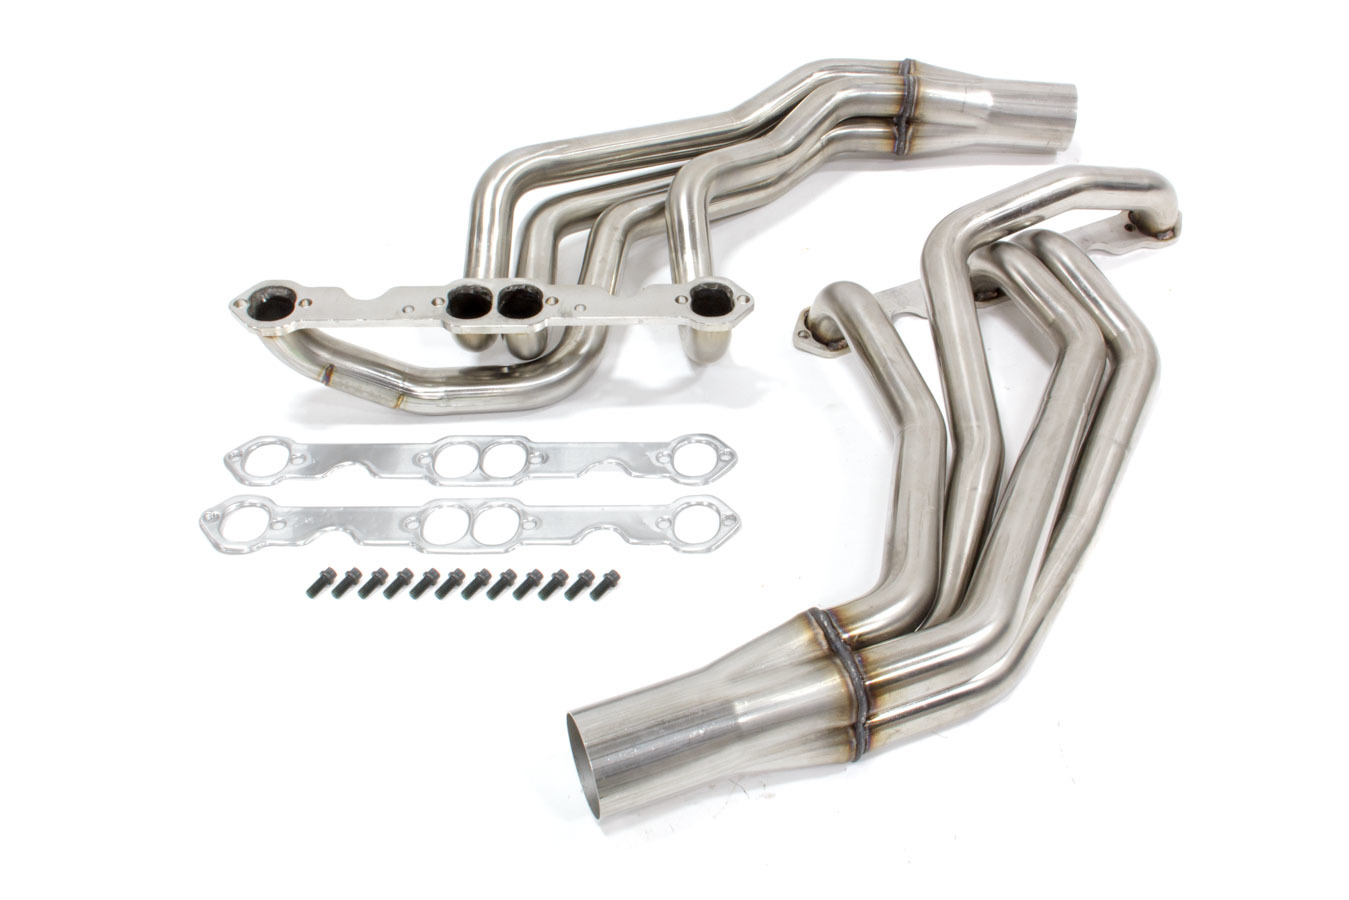 Kooks Headers 28202200 Headers, Long Tube, 1-3/4 in Primary, 3 in Collector, Stainless, Natural, Small Block Chevy, GM Fullsize Truck 1967-91, Kit